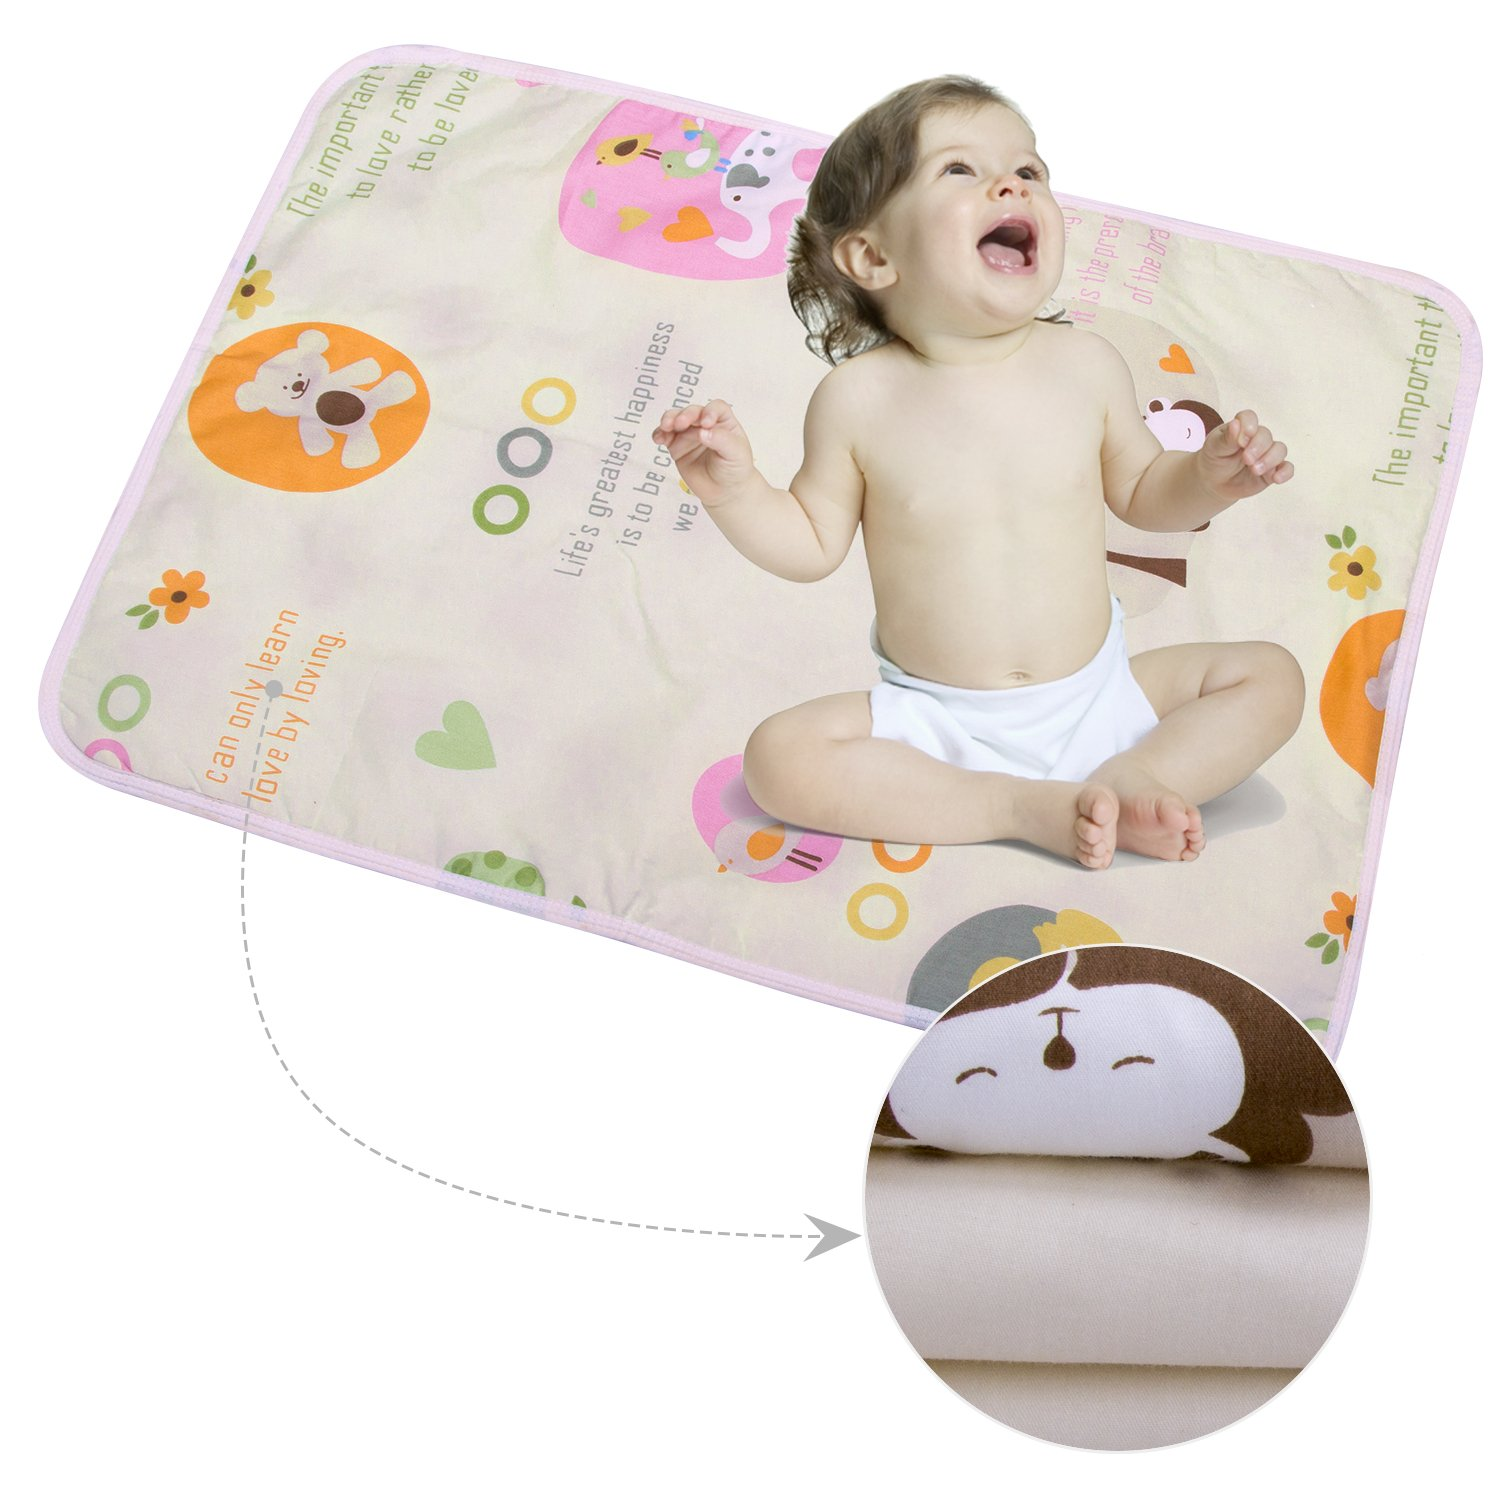 3PCS Infant Waterproof Urine Mat Cover - Breathable Changing Pad Protector for Baby Boys Girls (Champagne Park, M - 19.69 x 27.56 Inch (3 Piece)) anjerry